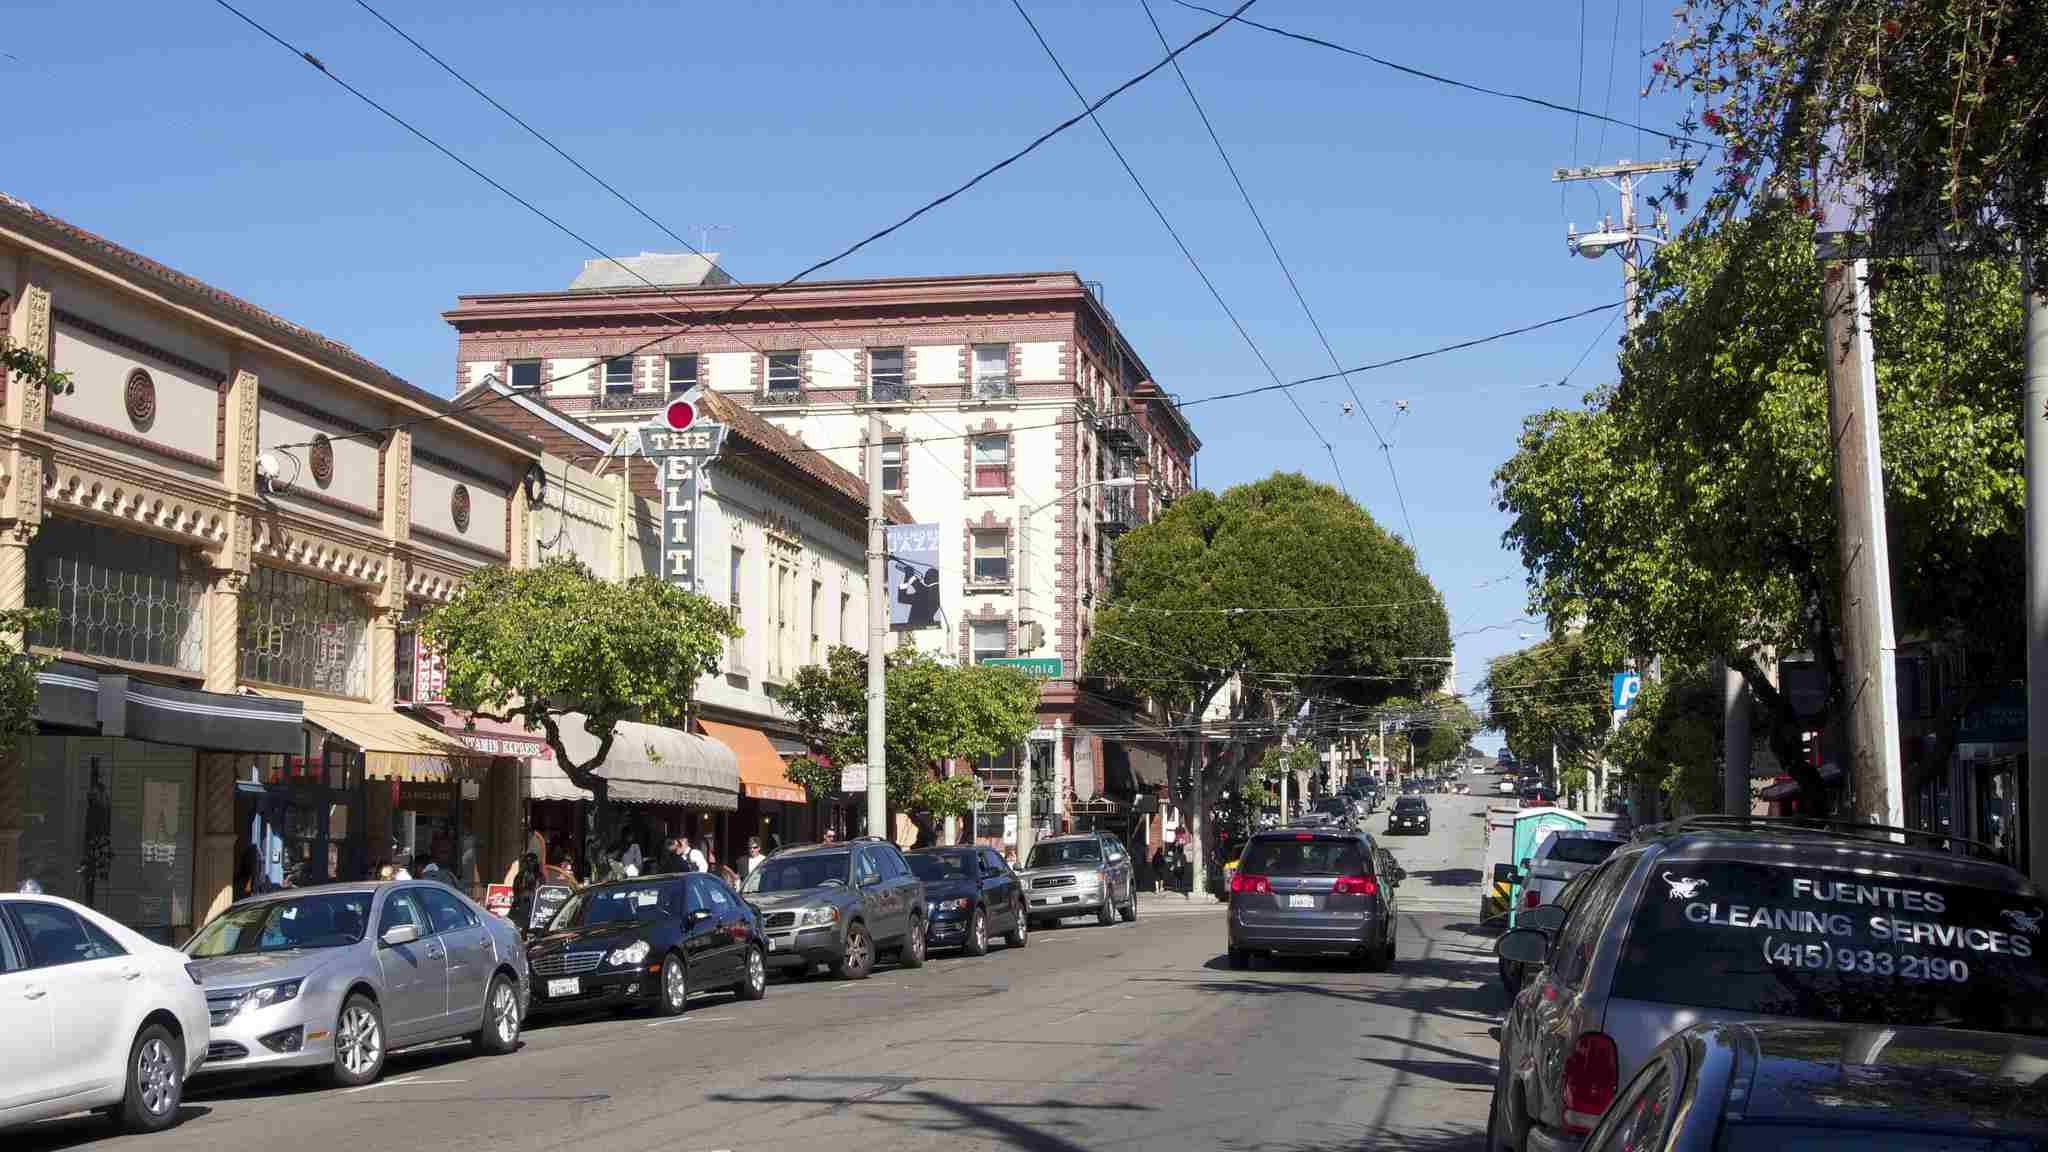 Fillmore Street, where the shops and restaurants intertwine